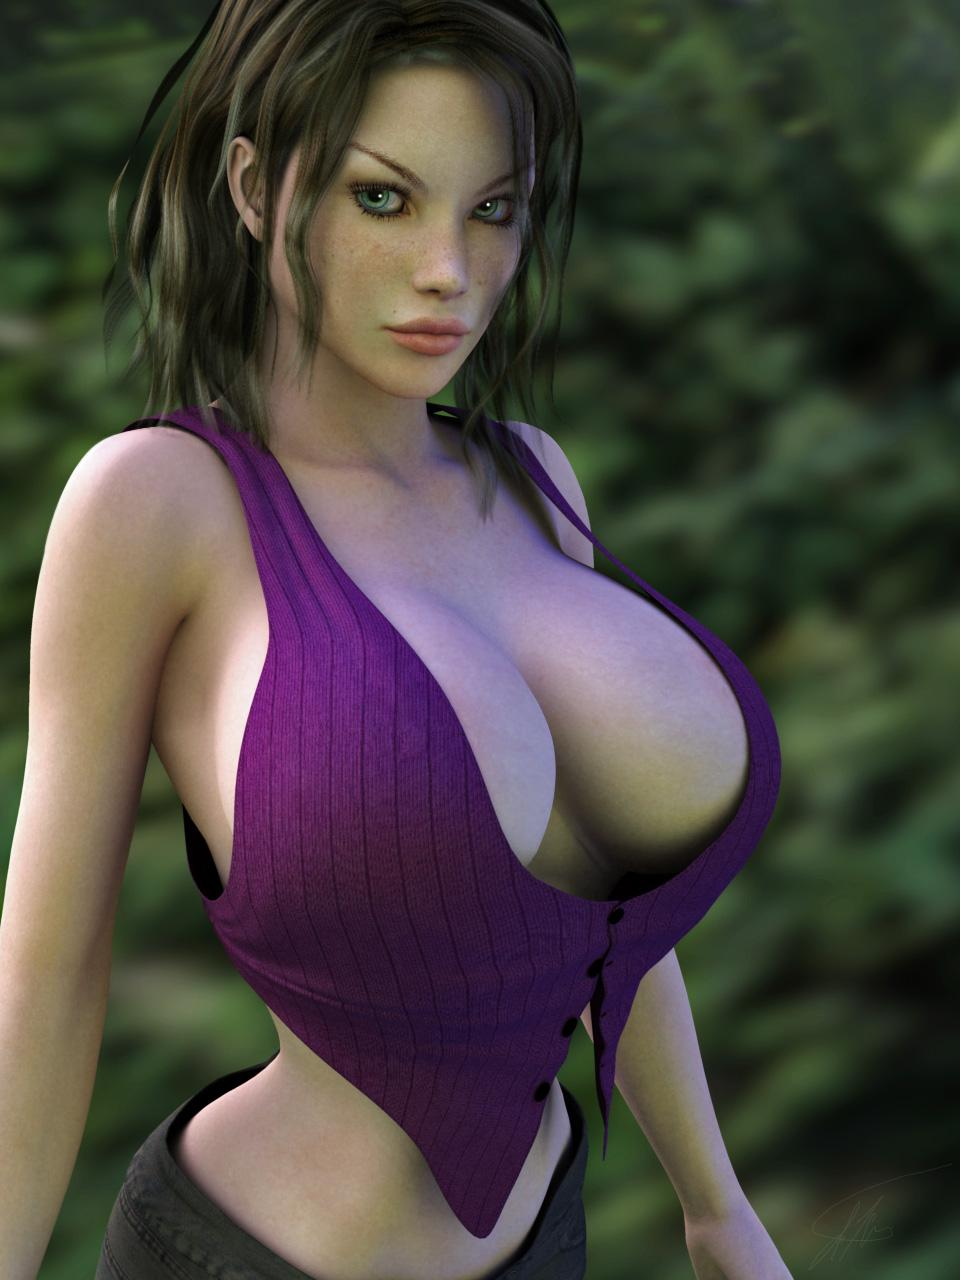 Image big boobs art 3d exploited video